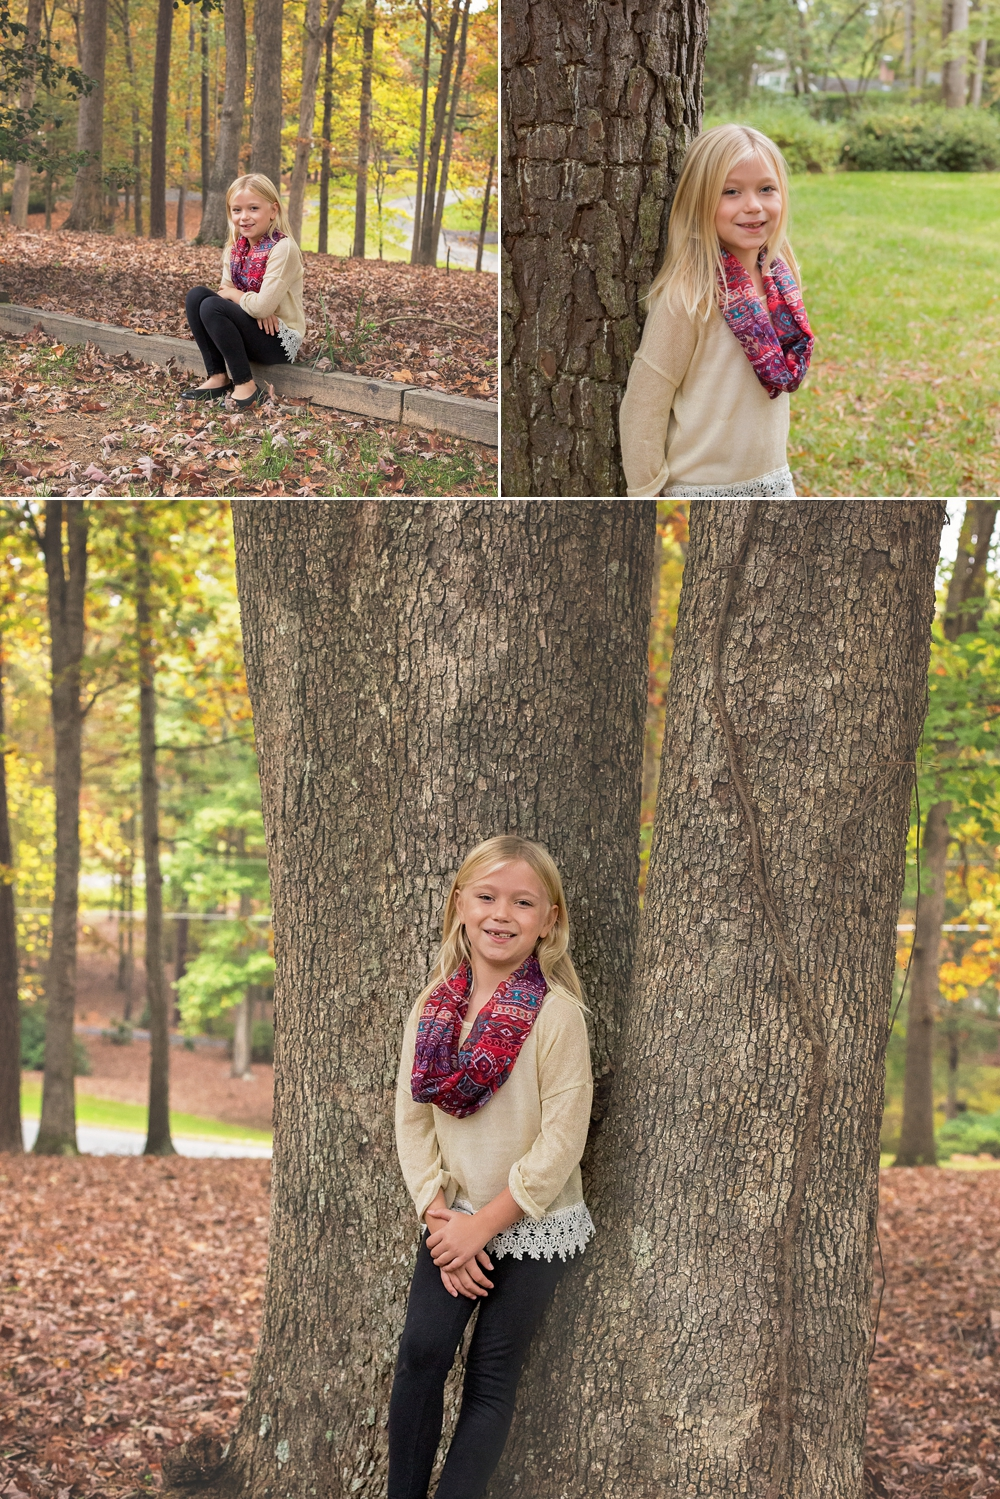 Younger sister poses with tree during Sanford family photography session.